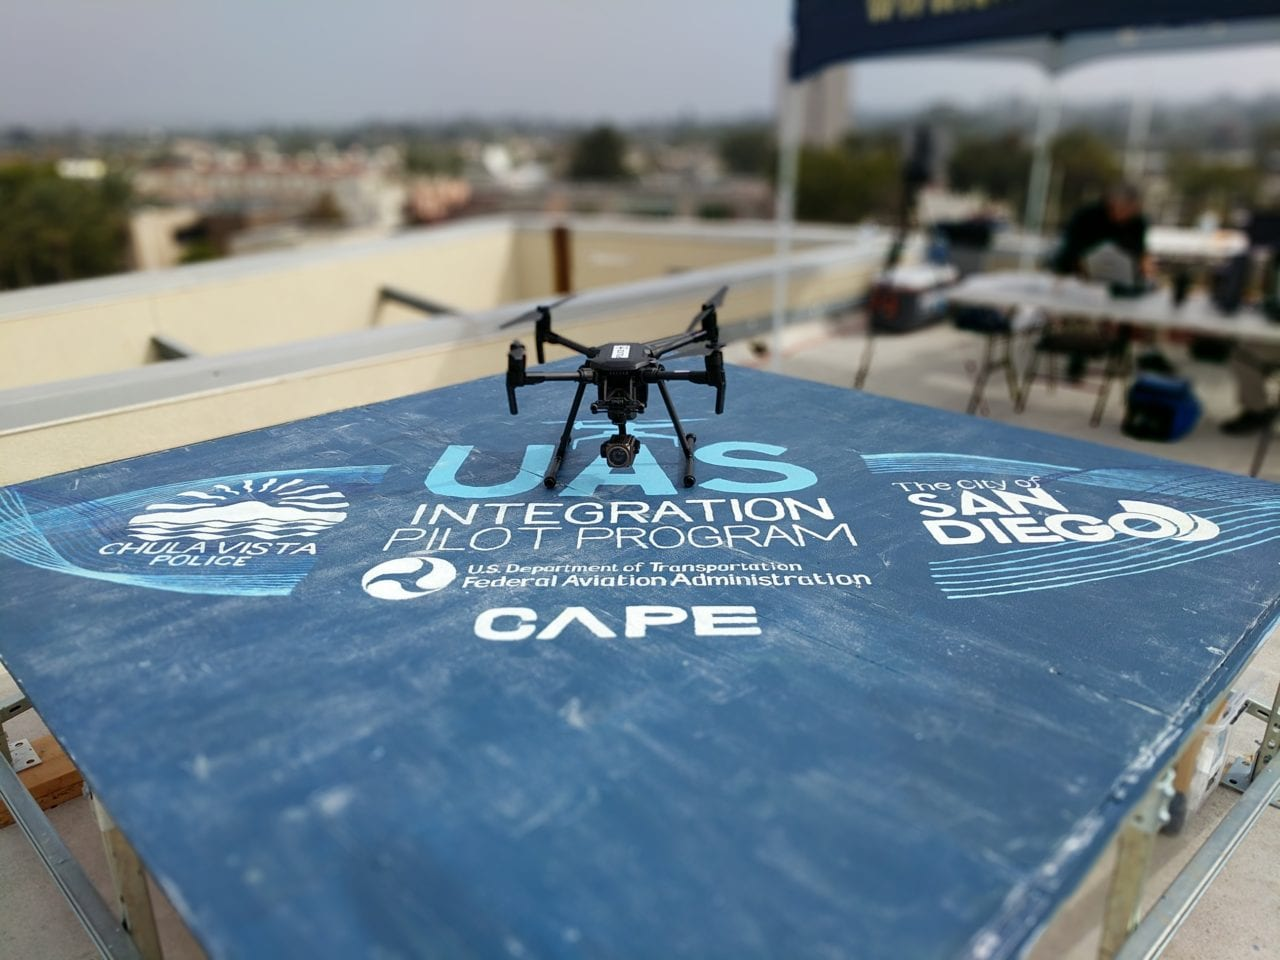 A Cape-equipped drone as part of the FAA's IPP. (Cape)